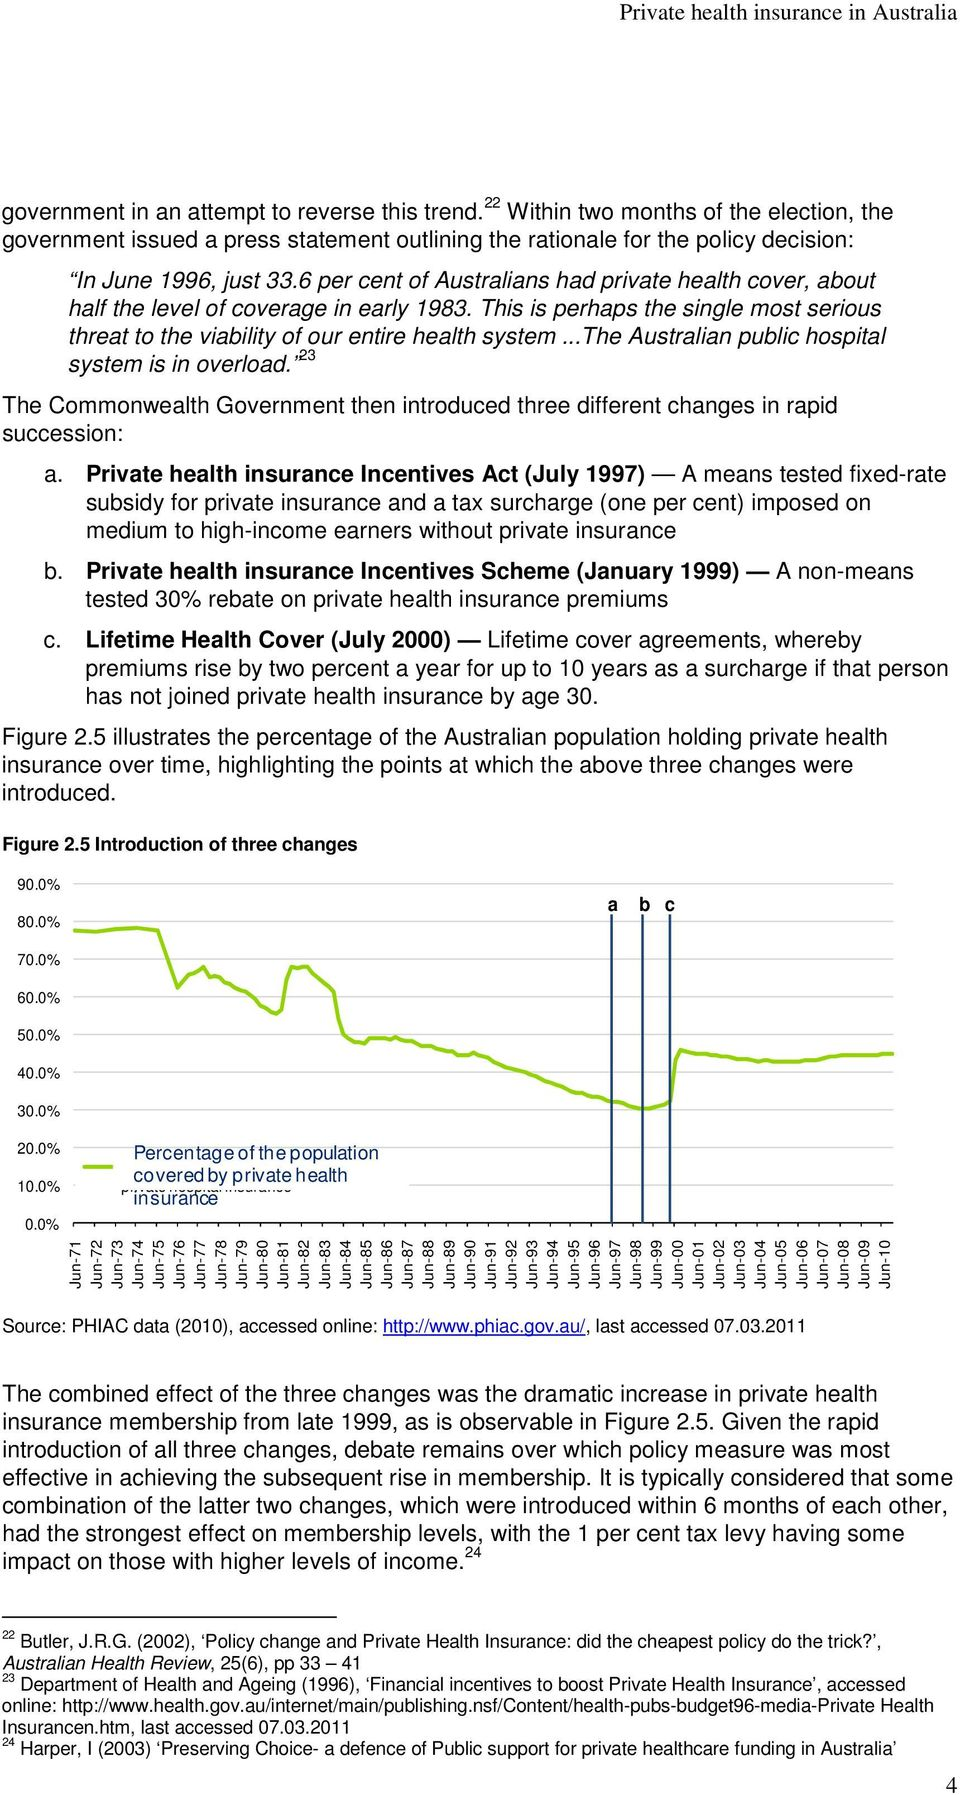 6 per cent of Australians had private health cover, about half the level of coverage in early 1983. This is perhaps the single most serious threat to the viability of our entire health system.